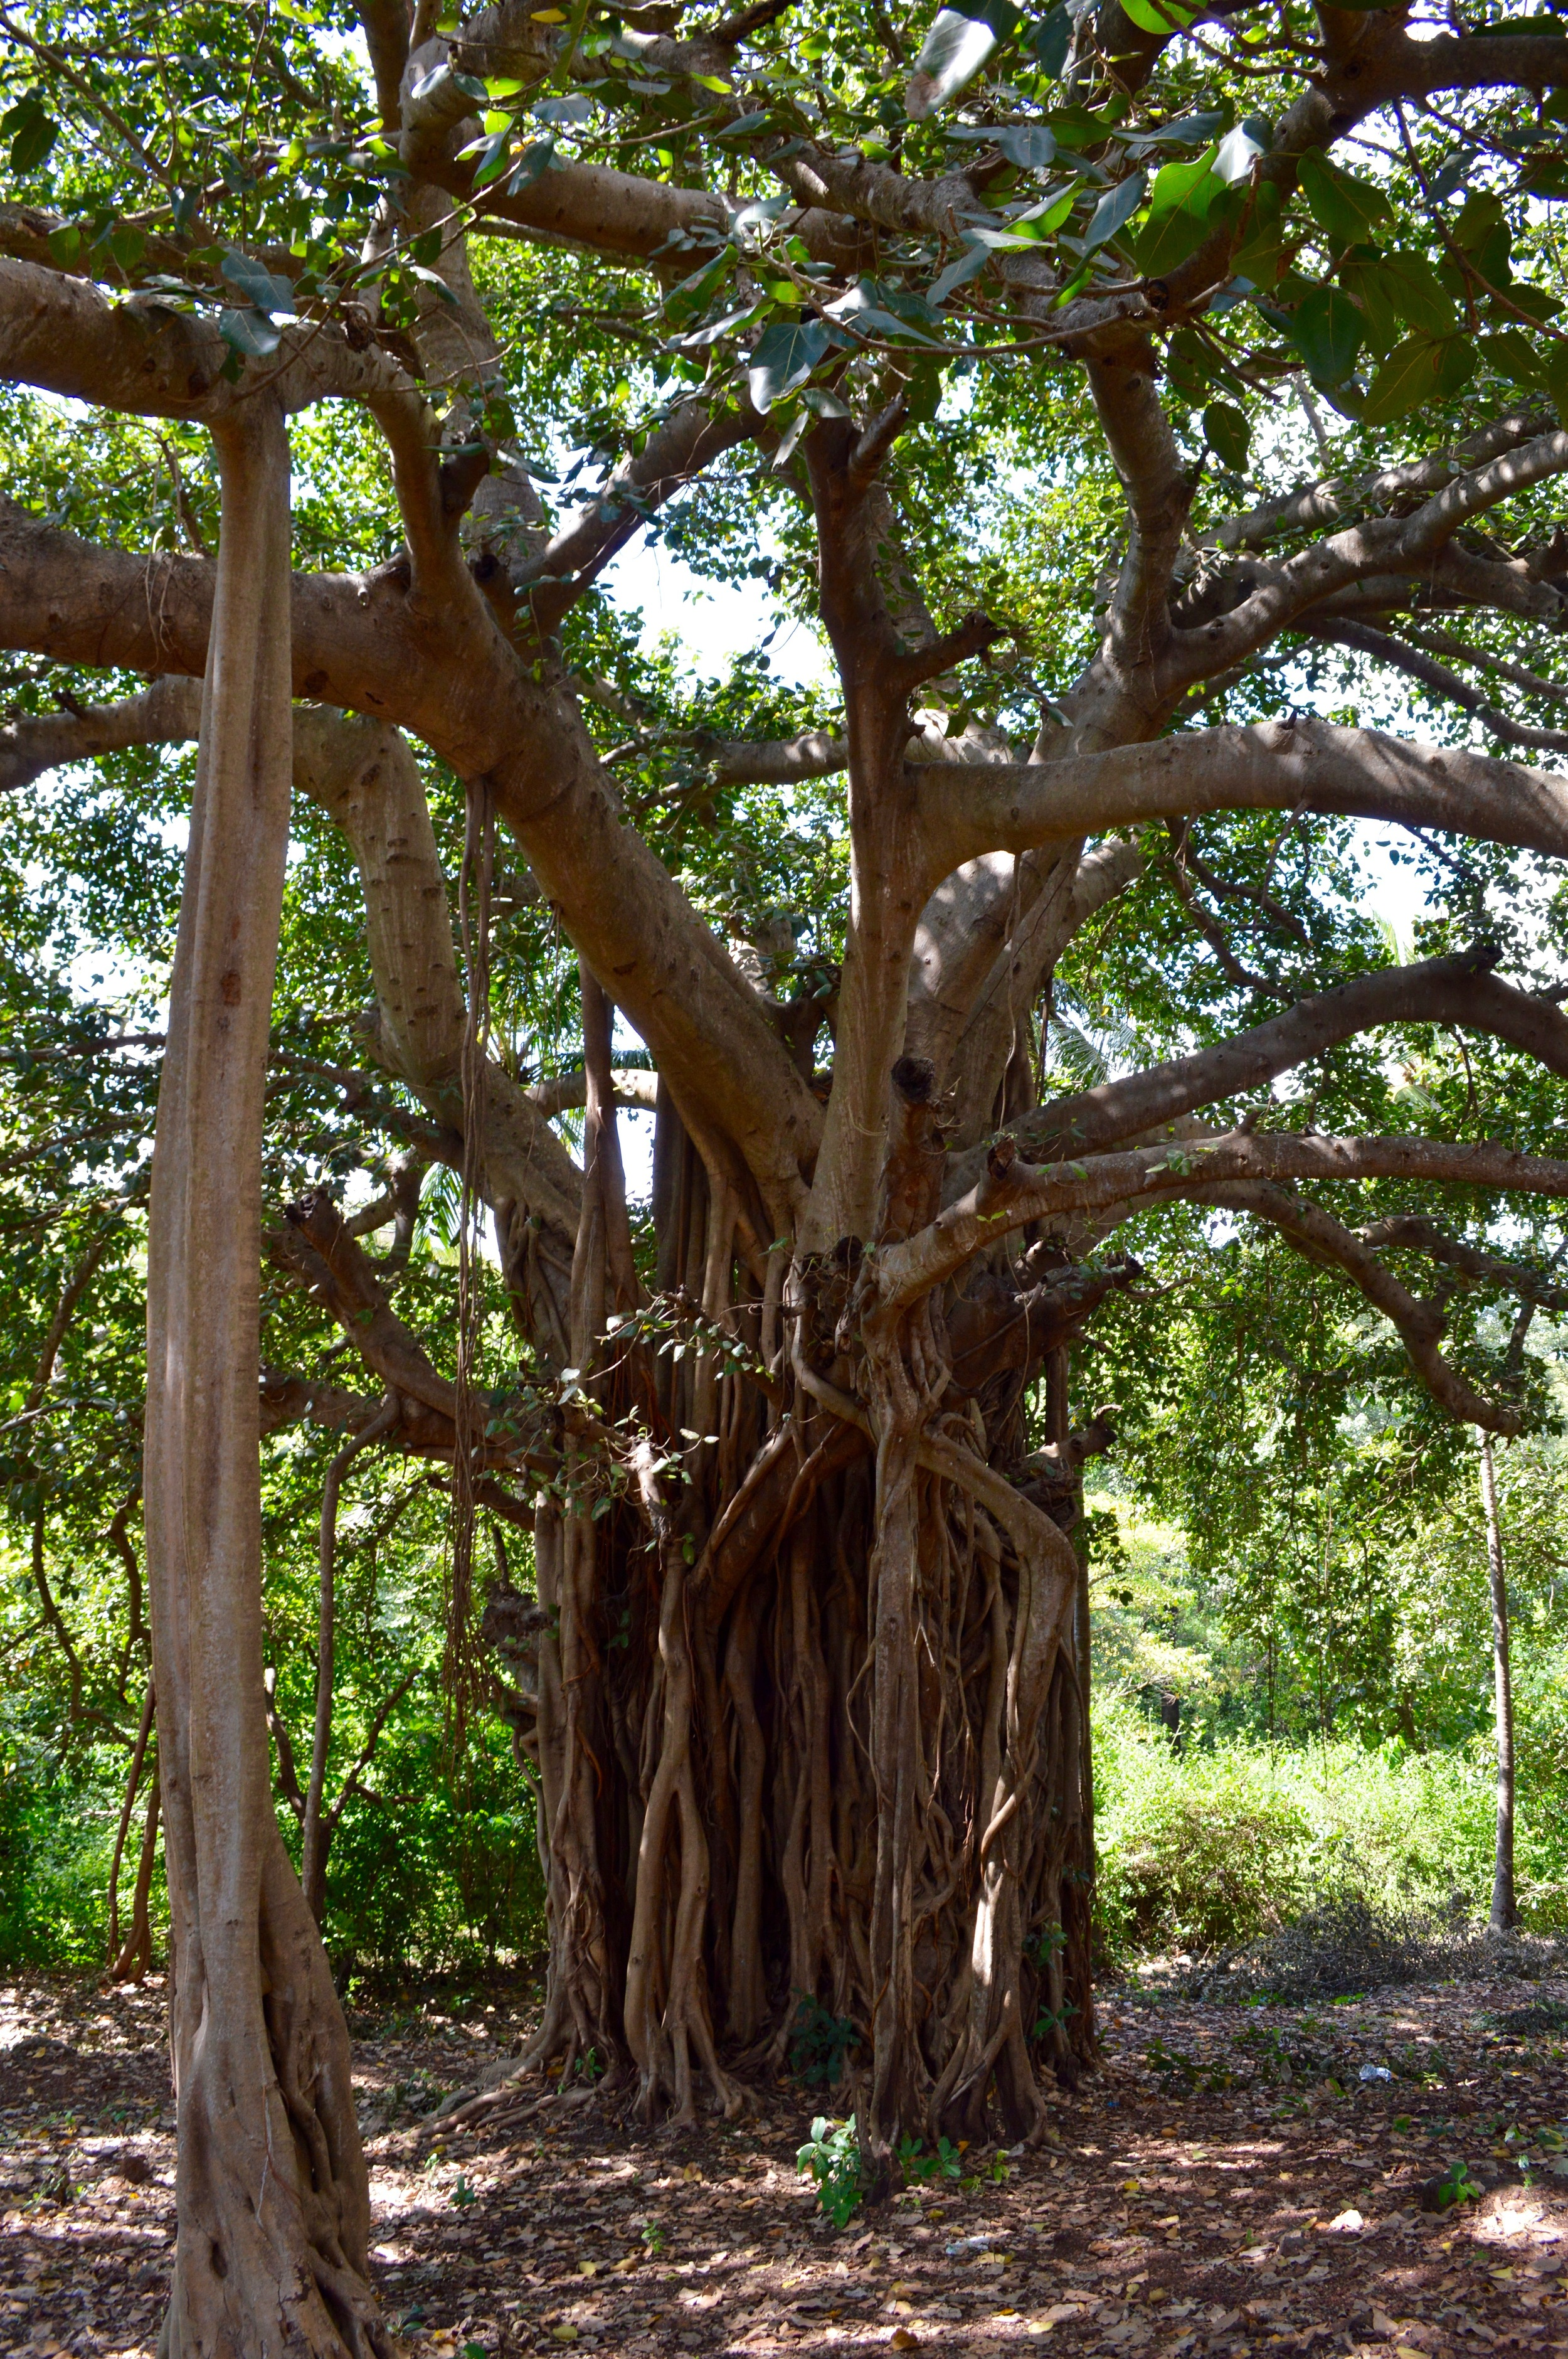 Traditional Indian banyan tree, known for large branches that extend down to the ground, creating new roots and thus new trees.